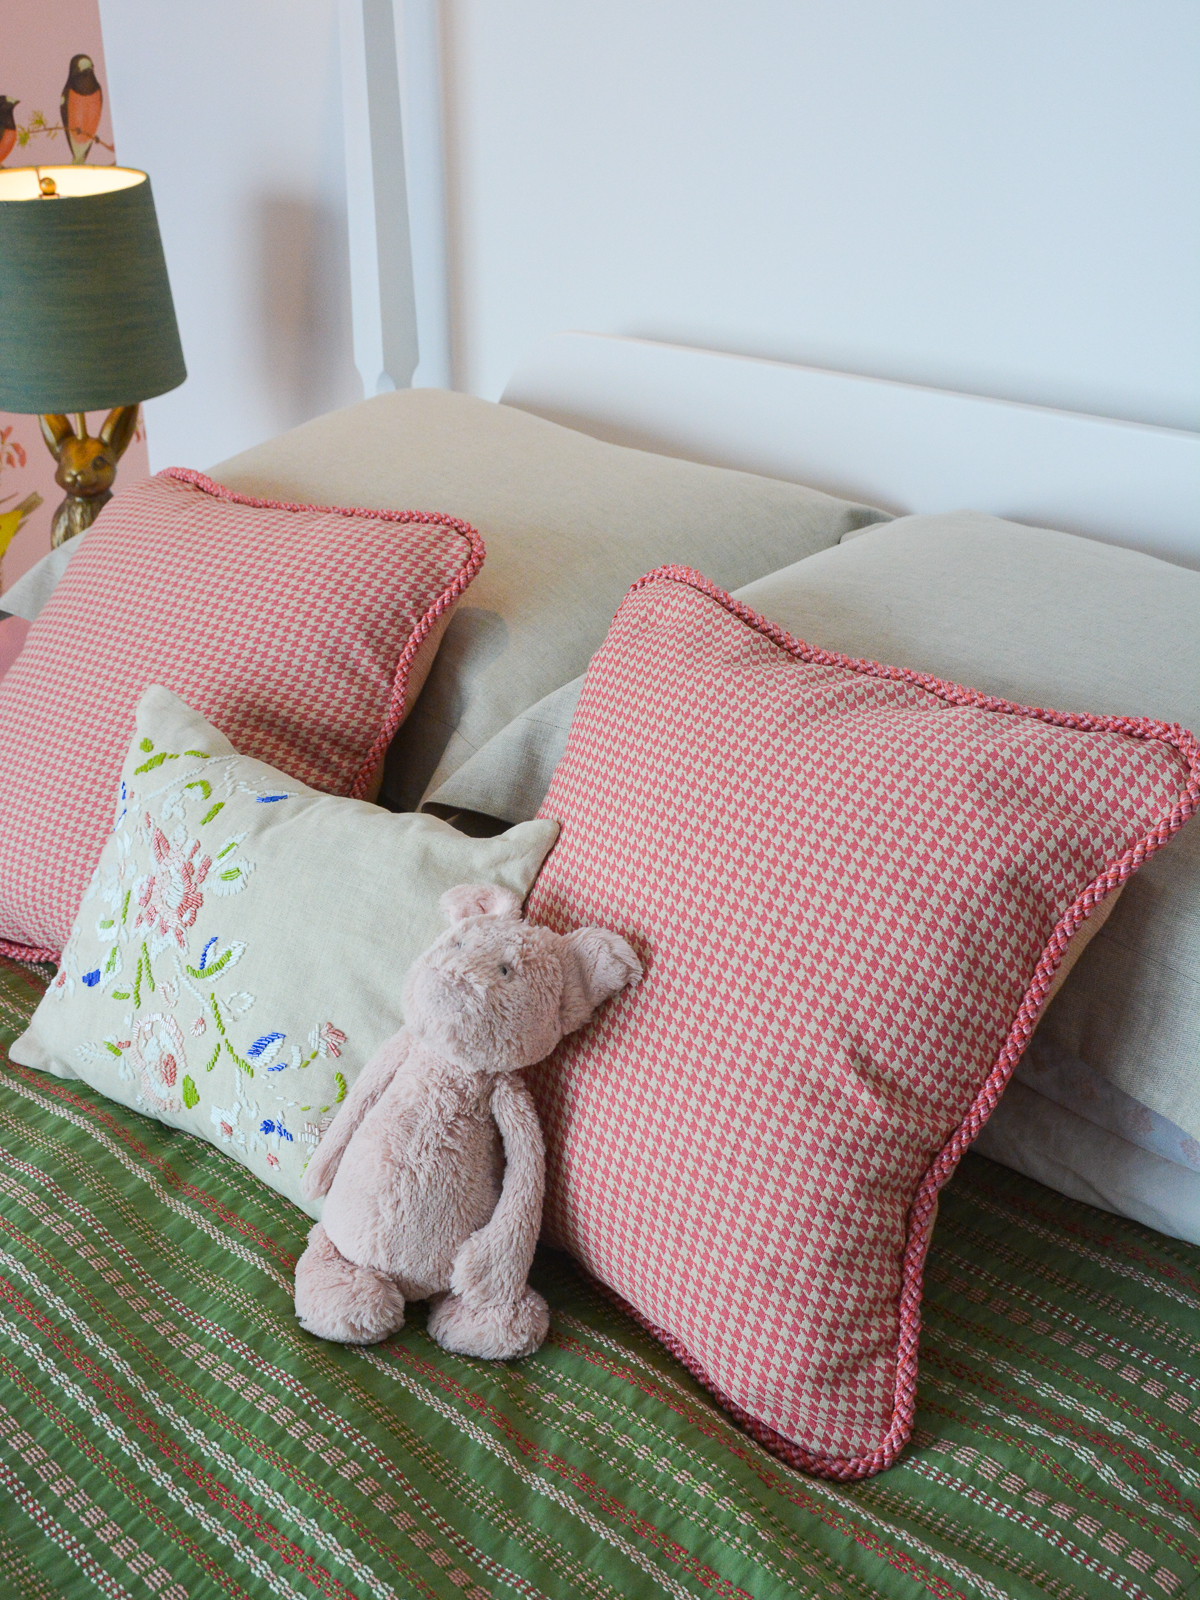 Diy Corded Pillow Cover Weallsew